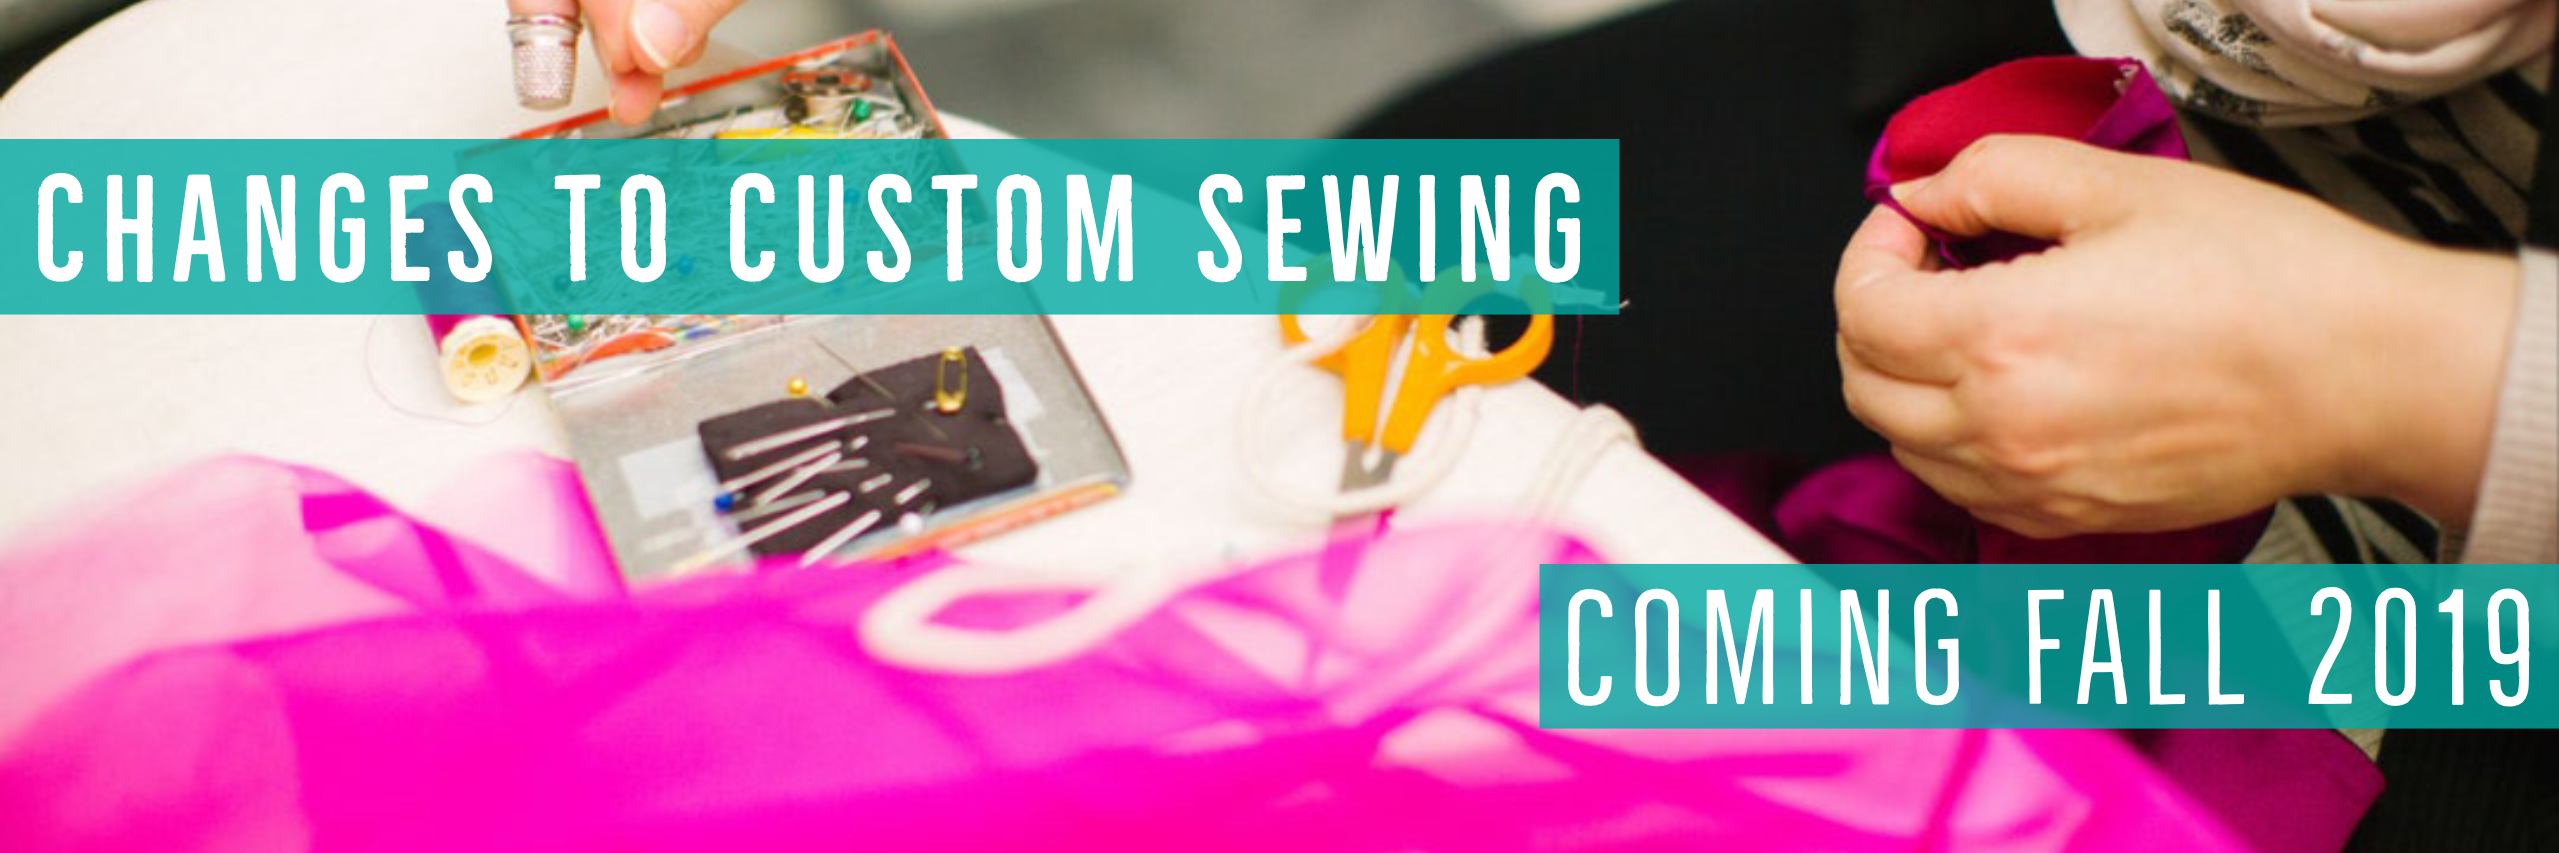 Changs to Custom Sewing Services - Fall 2019 - Stacey Sansom Designs